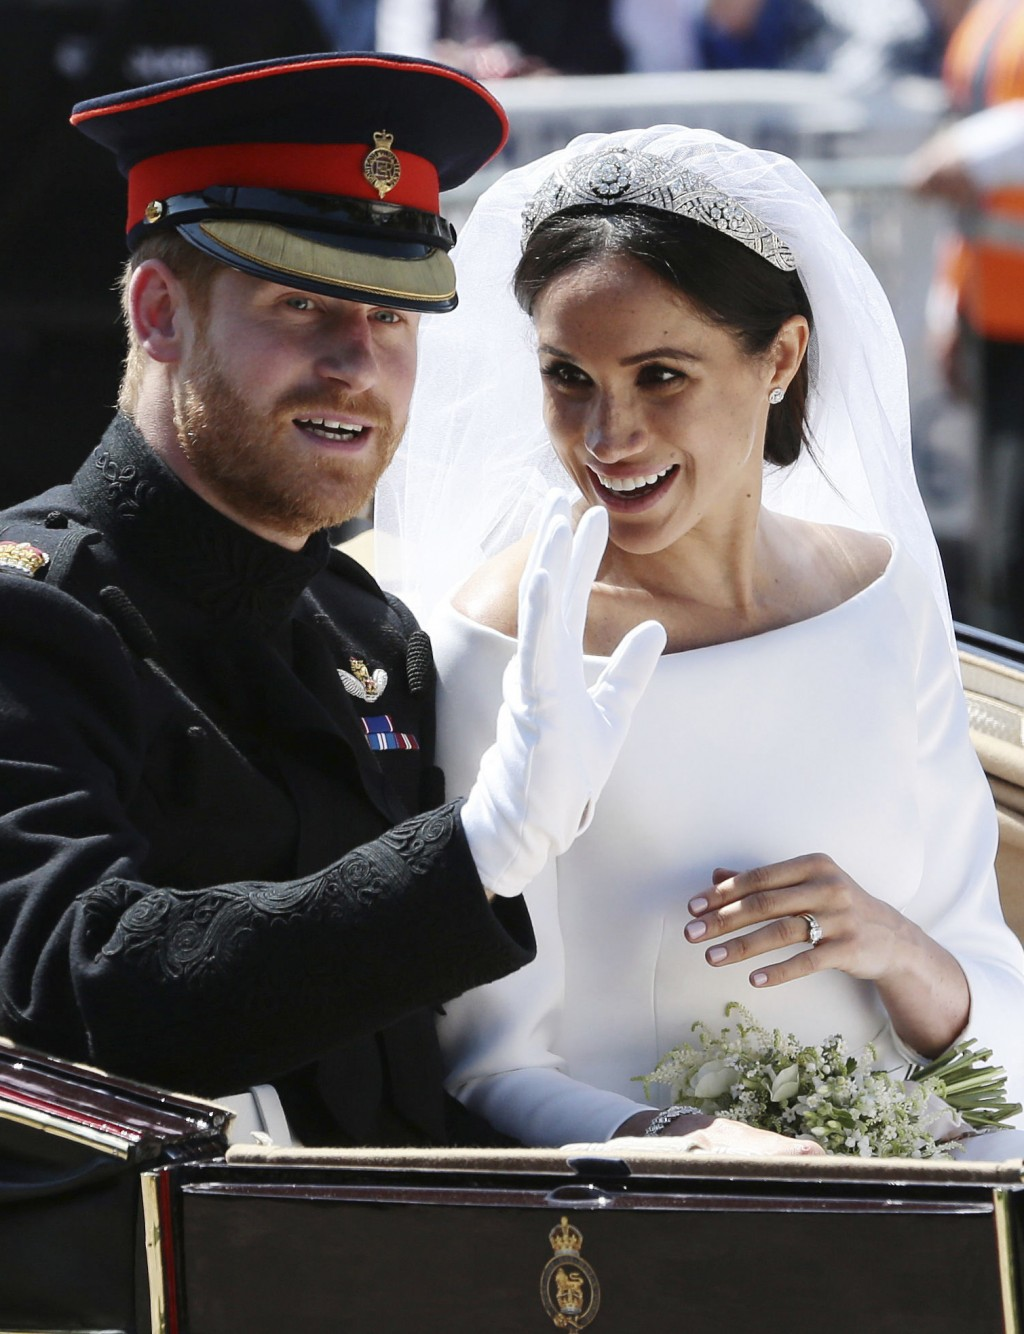 FILE - In this Saturday, May 19, 2018 file photo, Britain's Prince Harry and Meghan Markle ride in an open-topped carriage after their wedding ceremon...